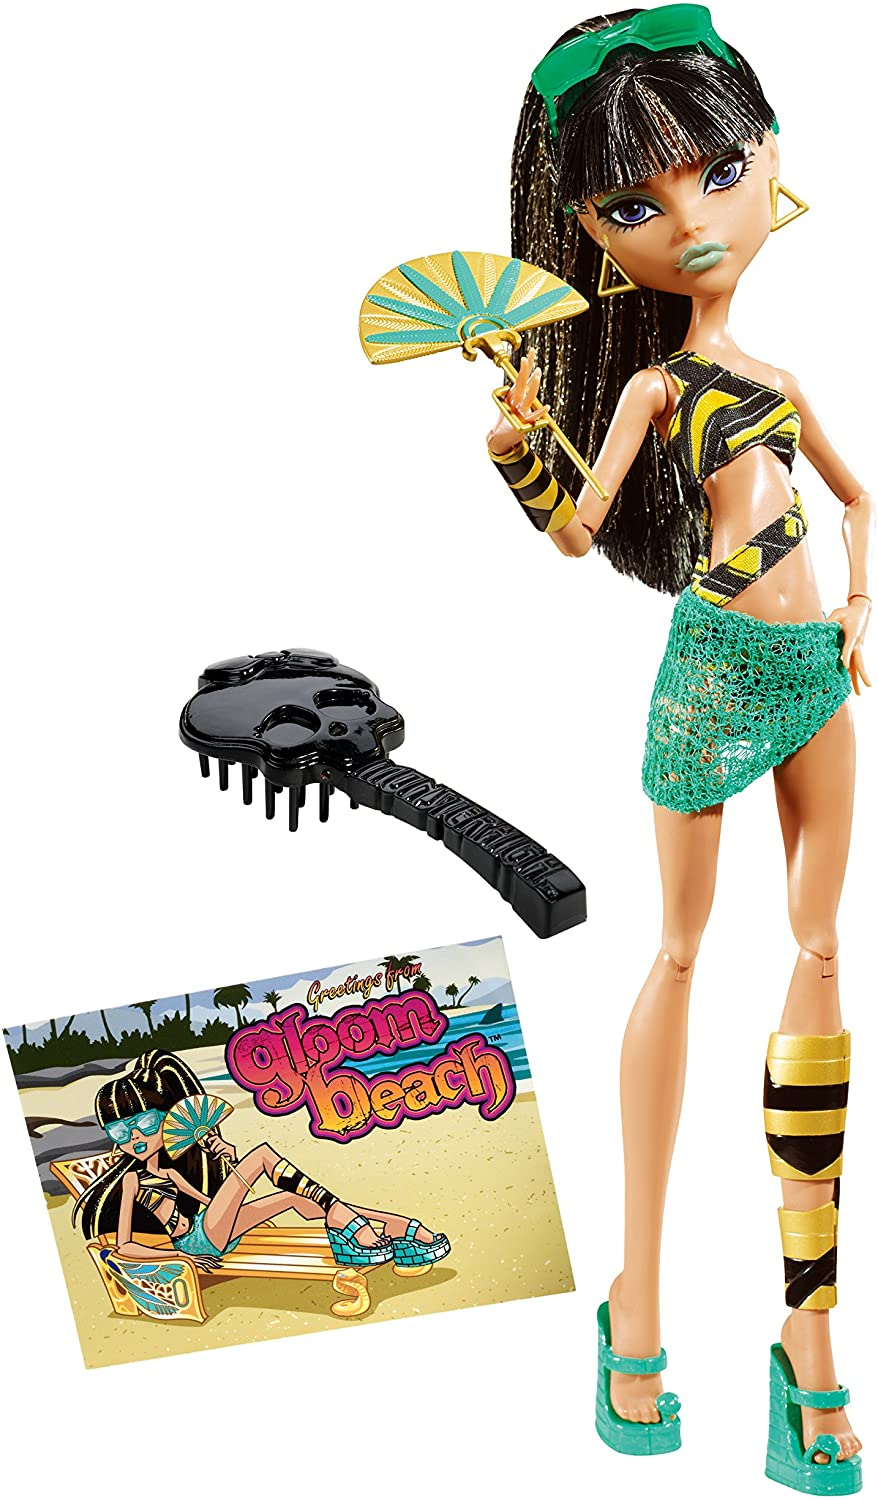 Amazon.es: Monster High Gloom Beach Cleo De Nile Muñeca: Juguetes ...